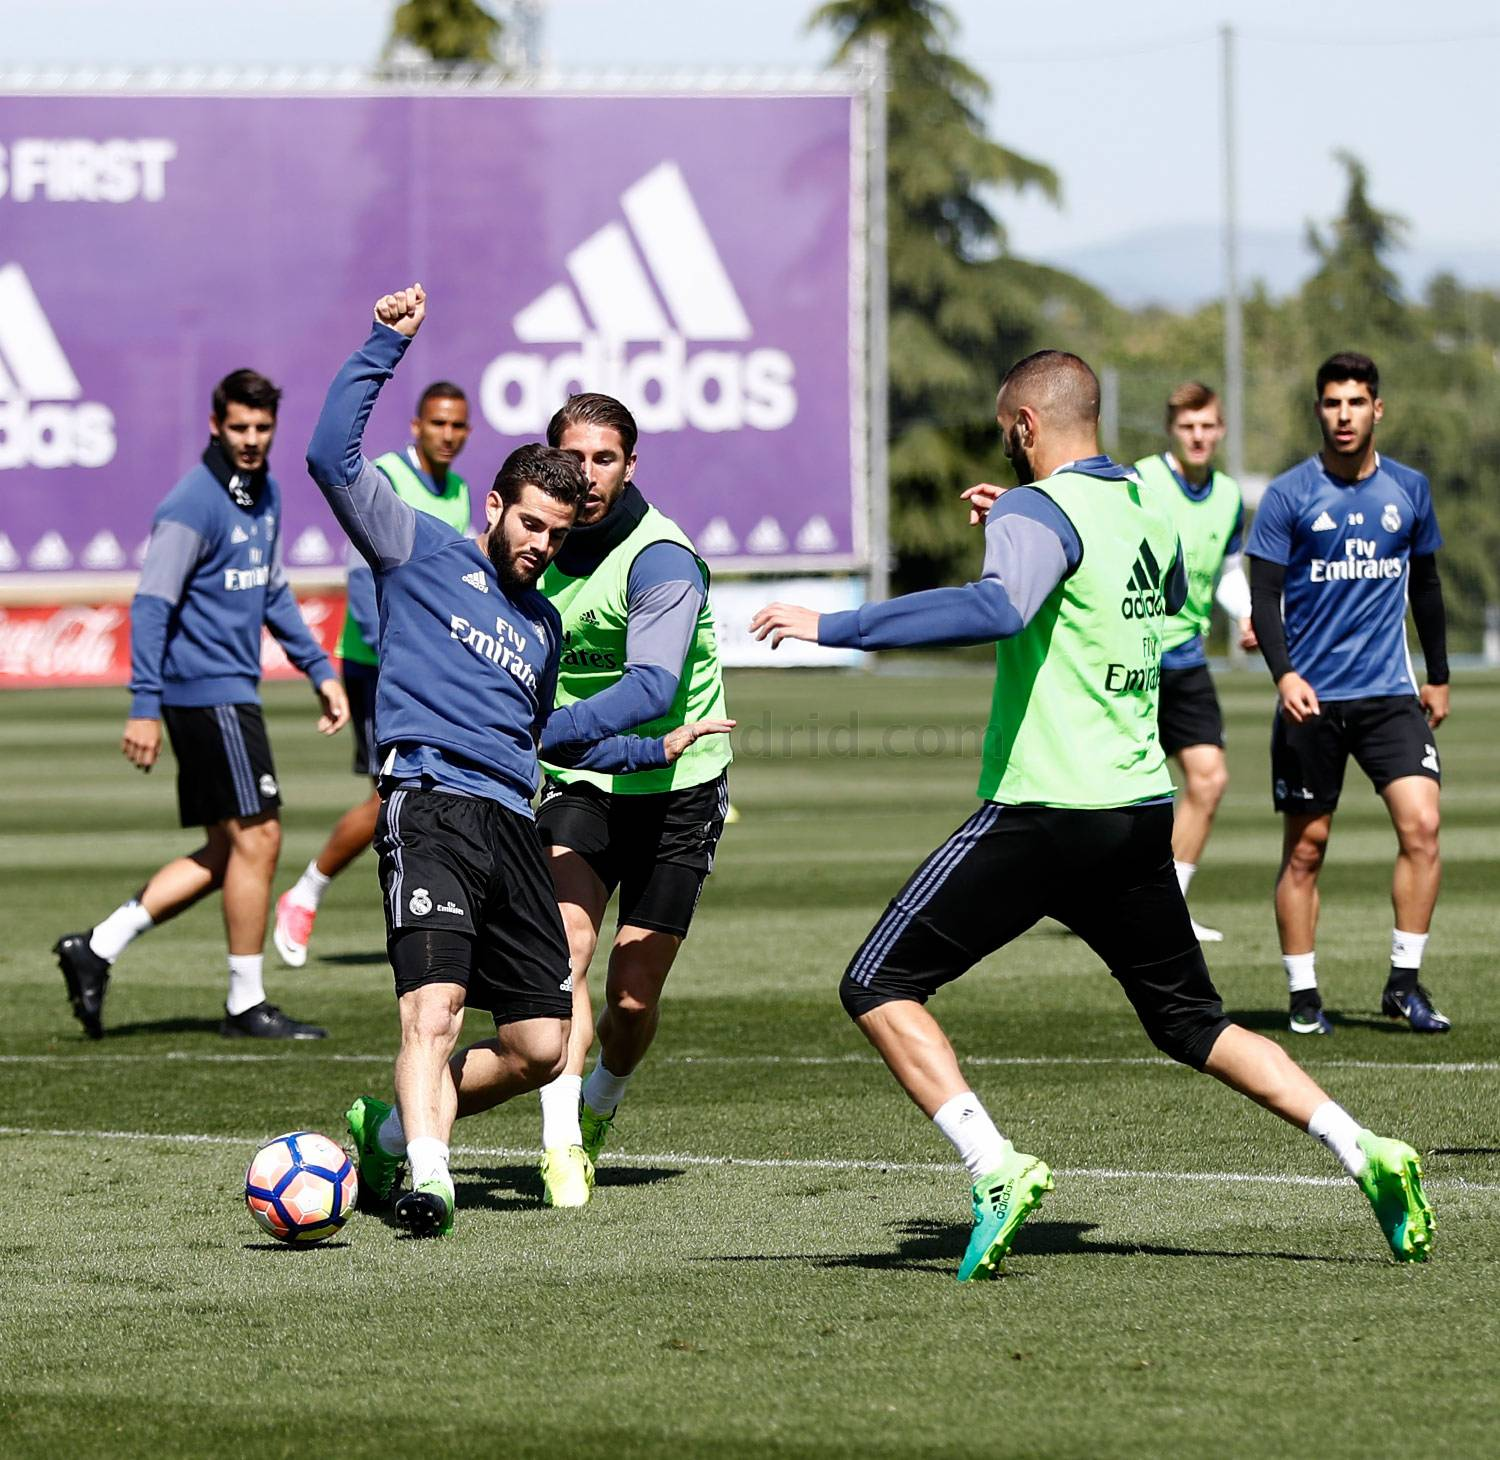 Real Madrid - Entrenamiento del Real Madrid - 28-04-2017